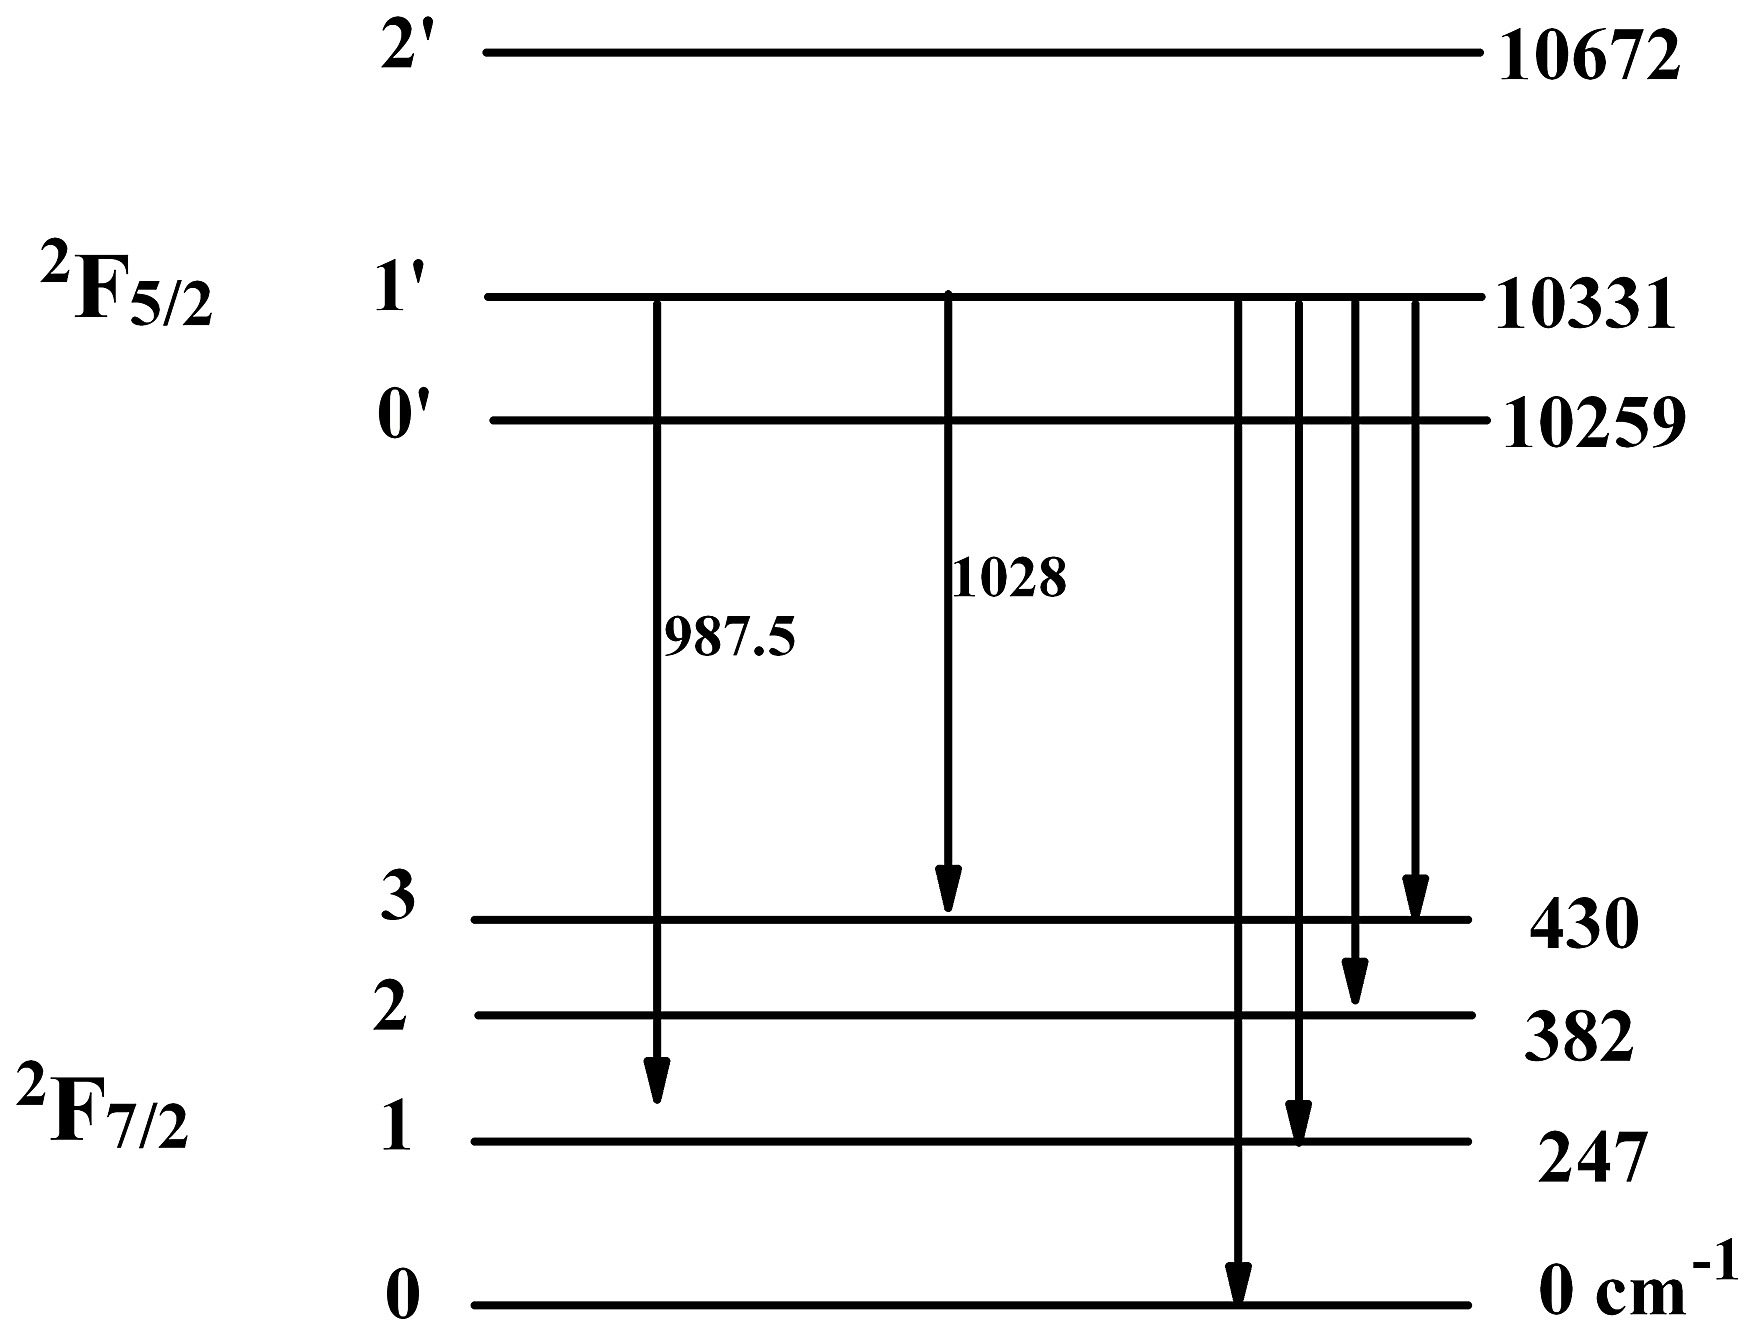 Energy Level Diagram Stark Energy Level Diagram Of The 2f52 And 2f72 Manifold Of Yb3